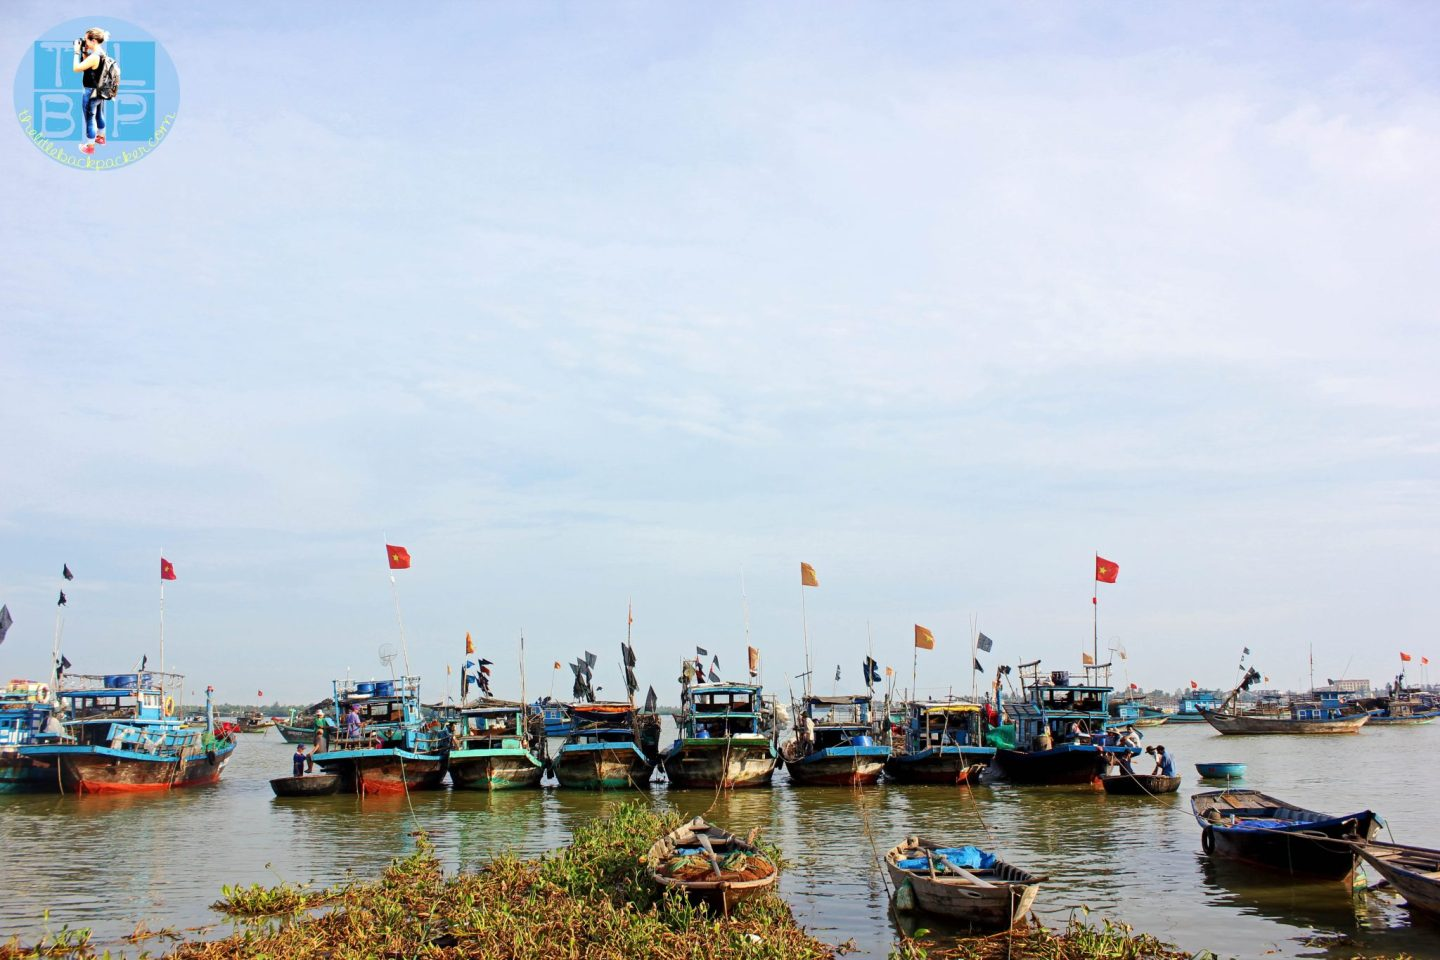 Vietnam Overview – An Excessive Amount of Motorbikes, Beautiful Landscapes and a Maze of Limestone Casts